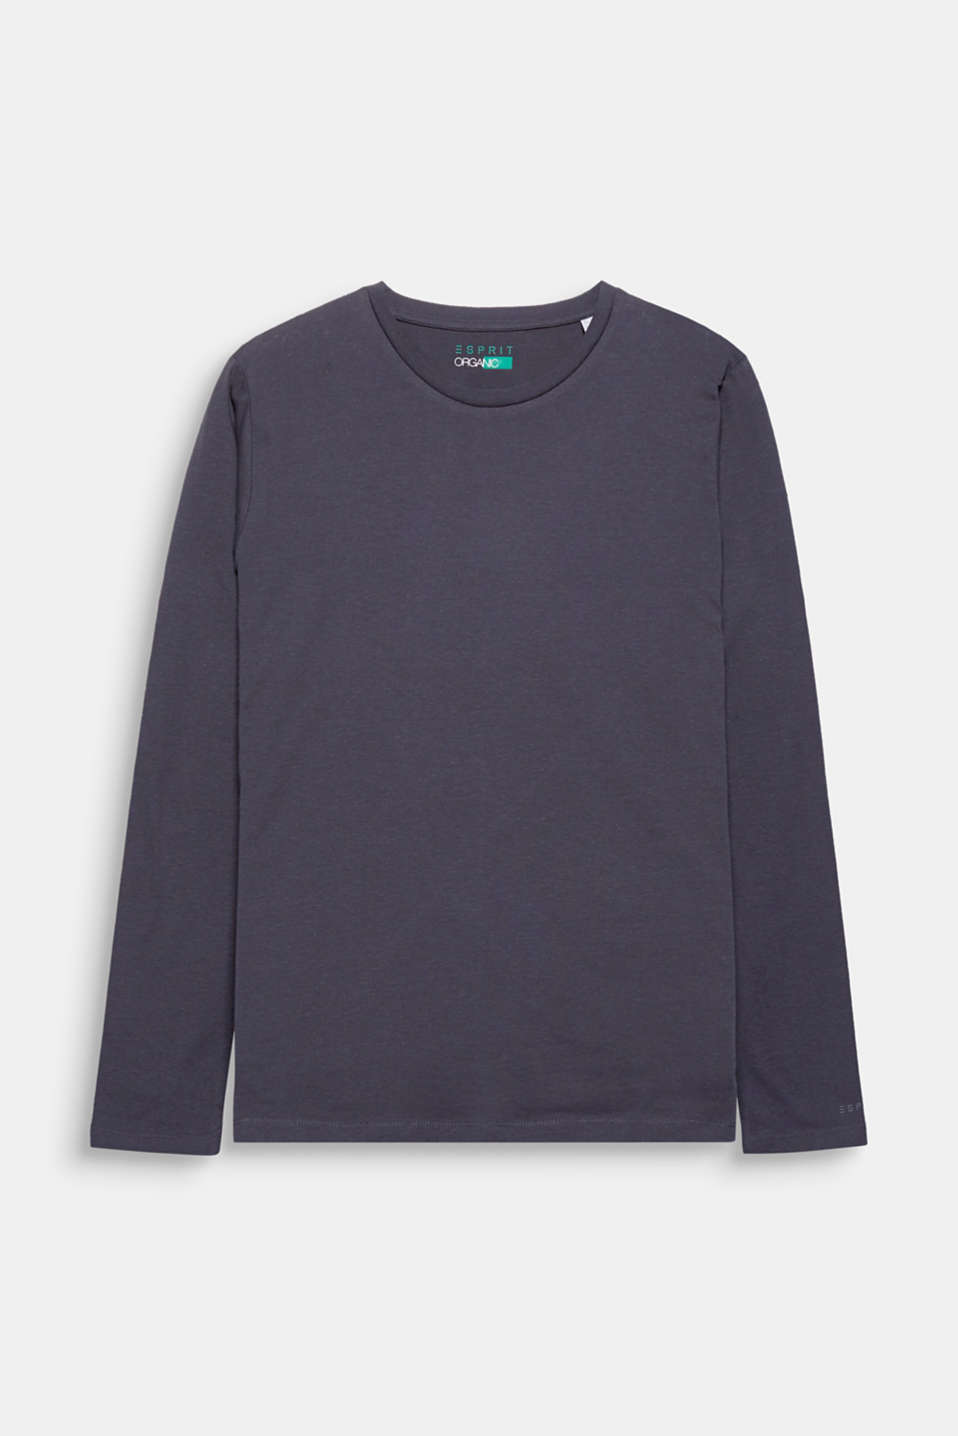 A fashion basic and must-have for every wardrobe: Long sleeve T-shirt with a round neckline and gently processed, high-quality organic cotton.